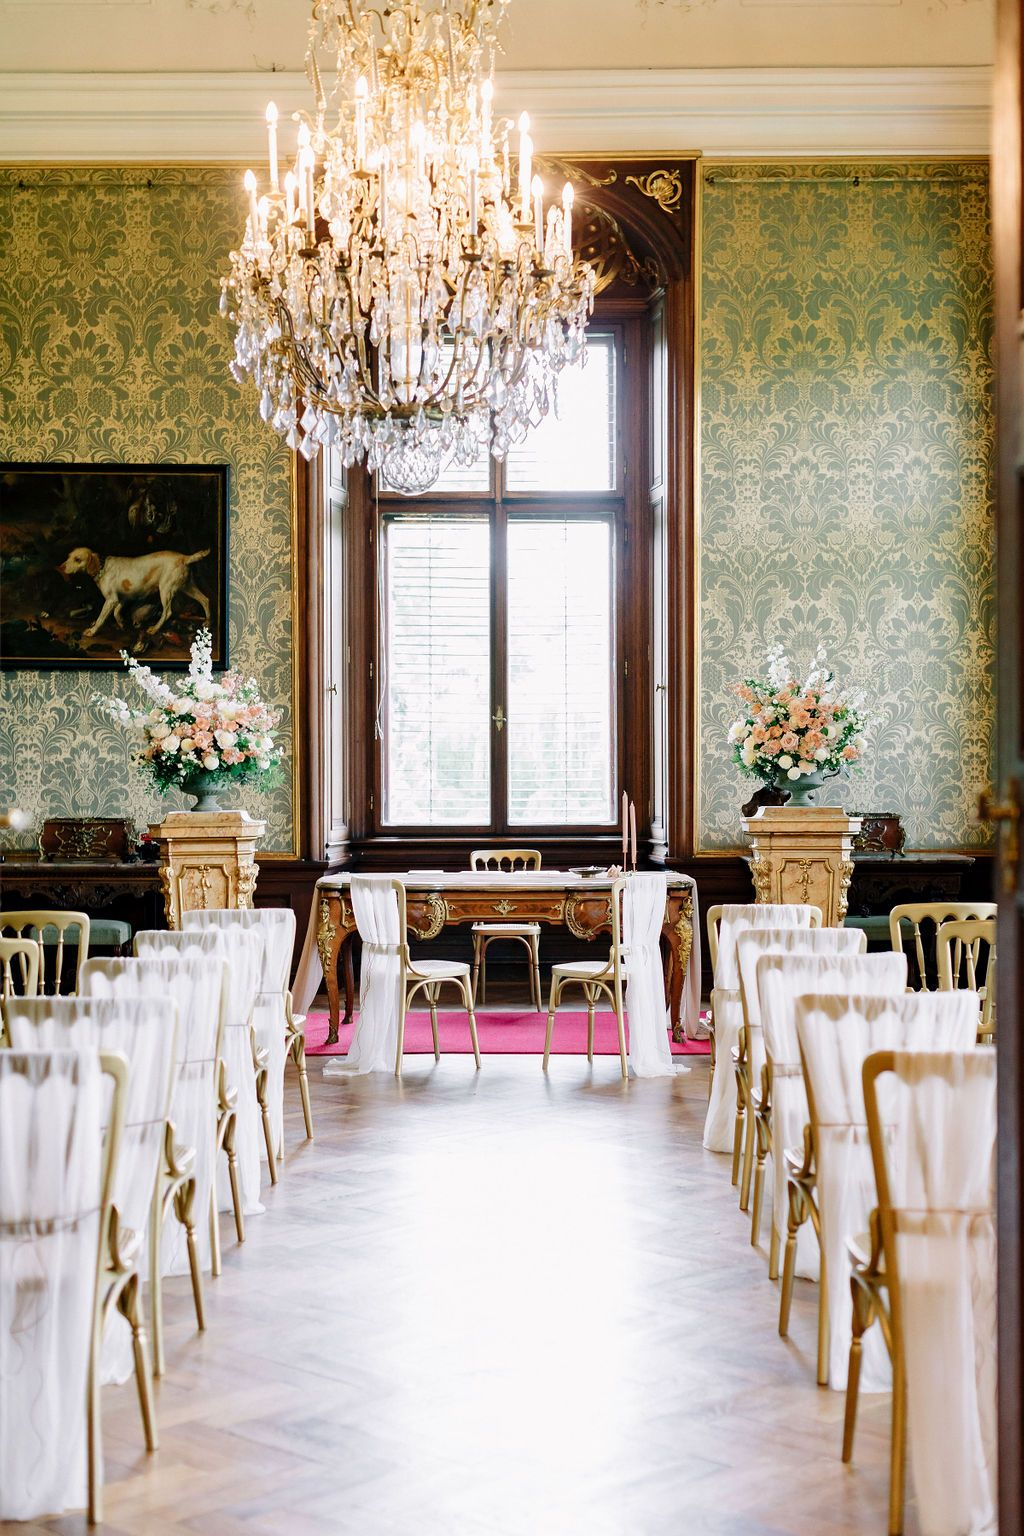 Inspiration for a dreamy wedding location abroad in 2020 ...